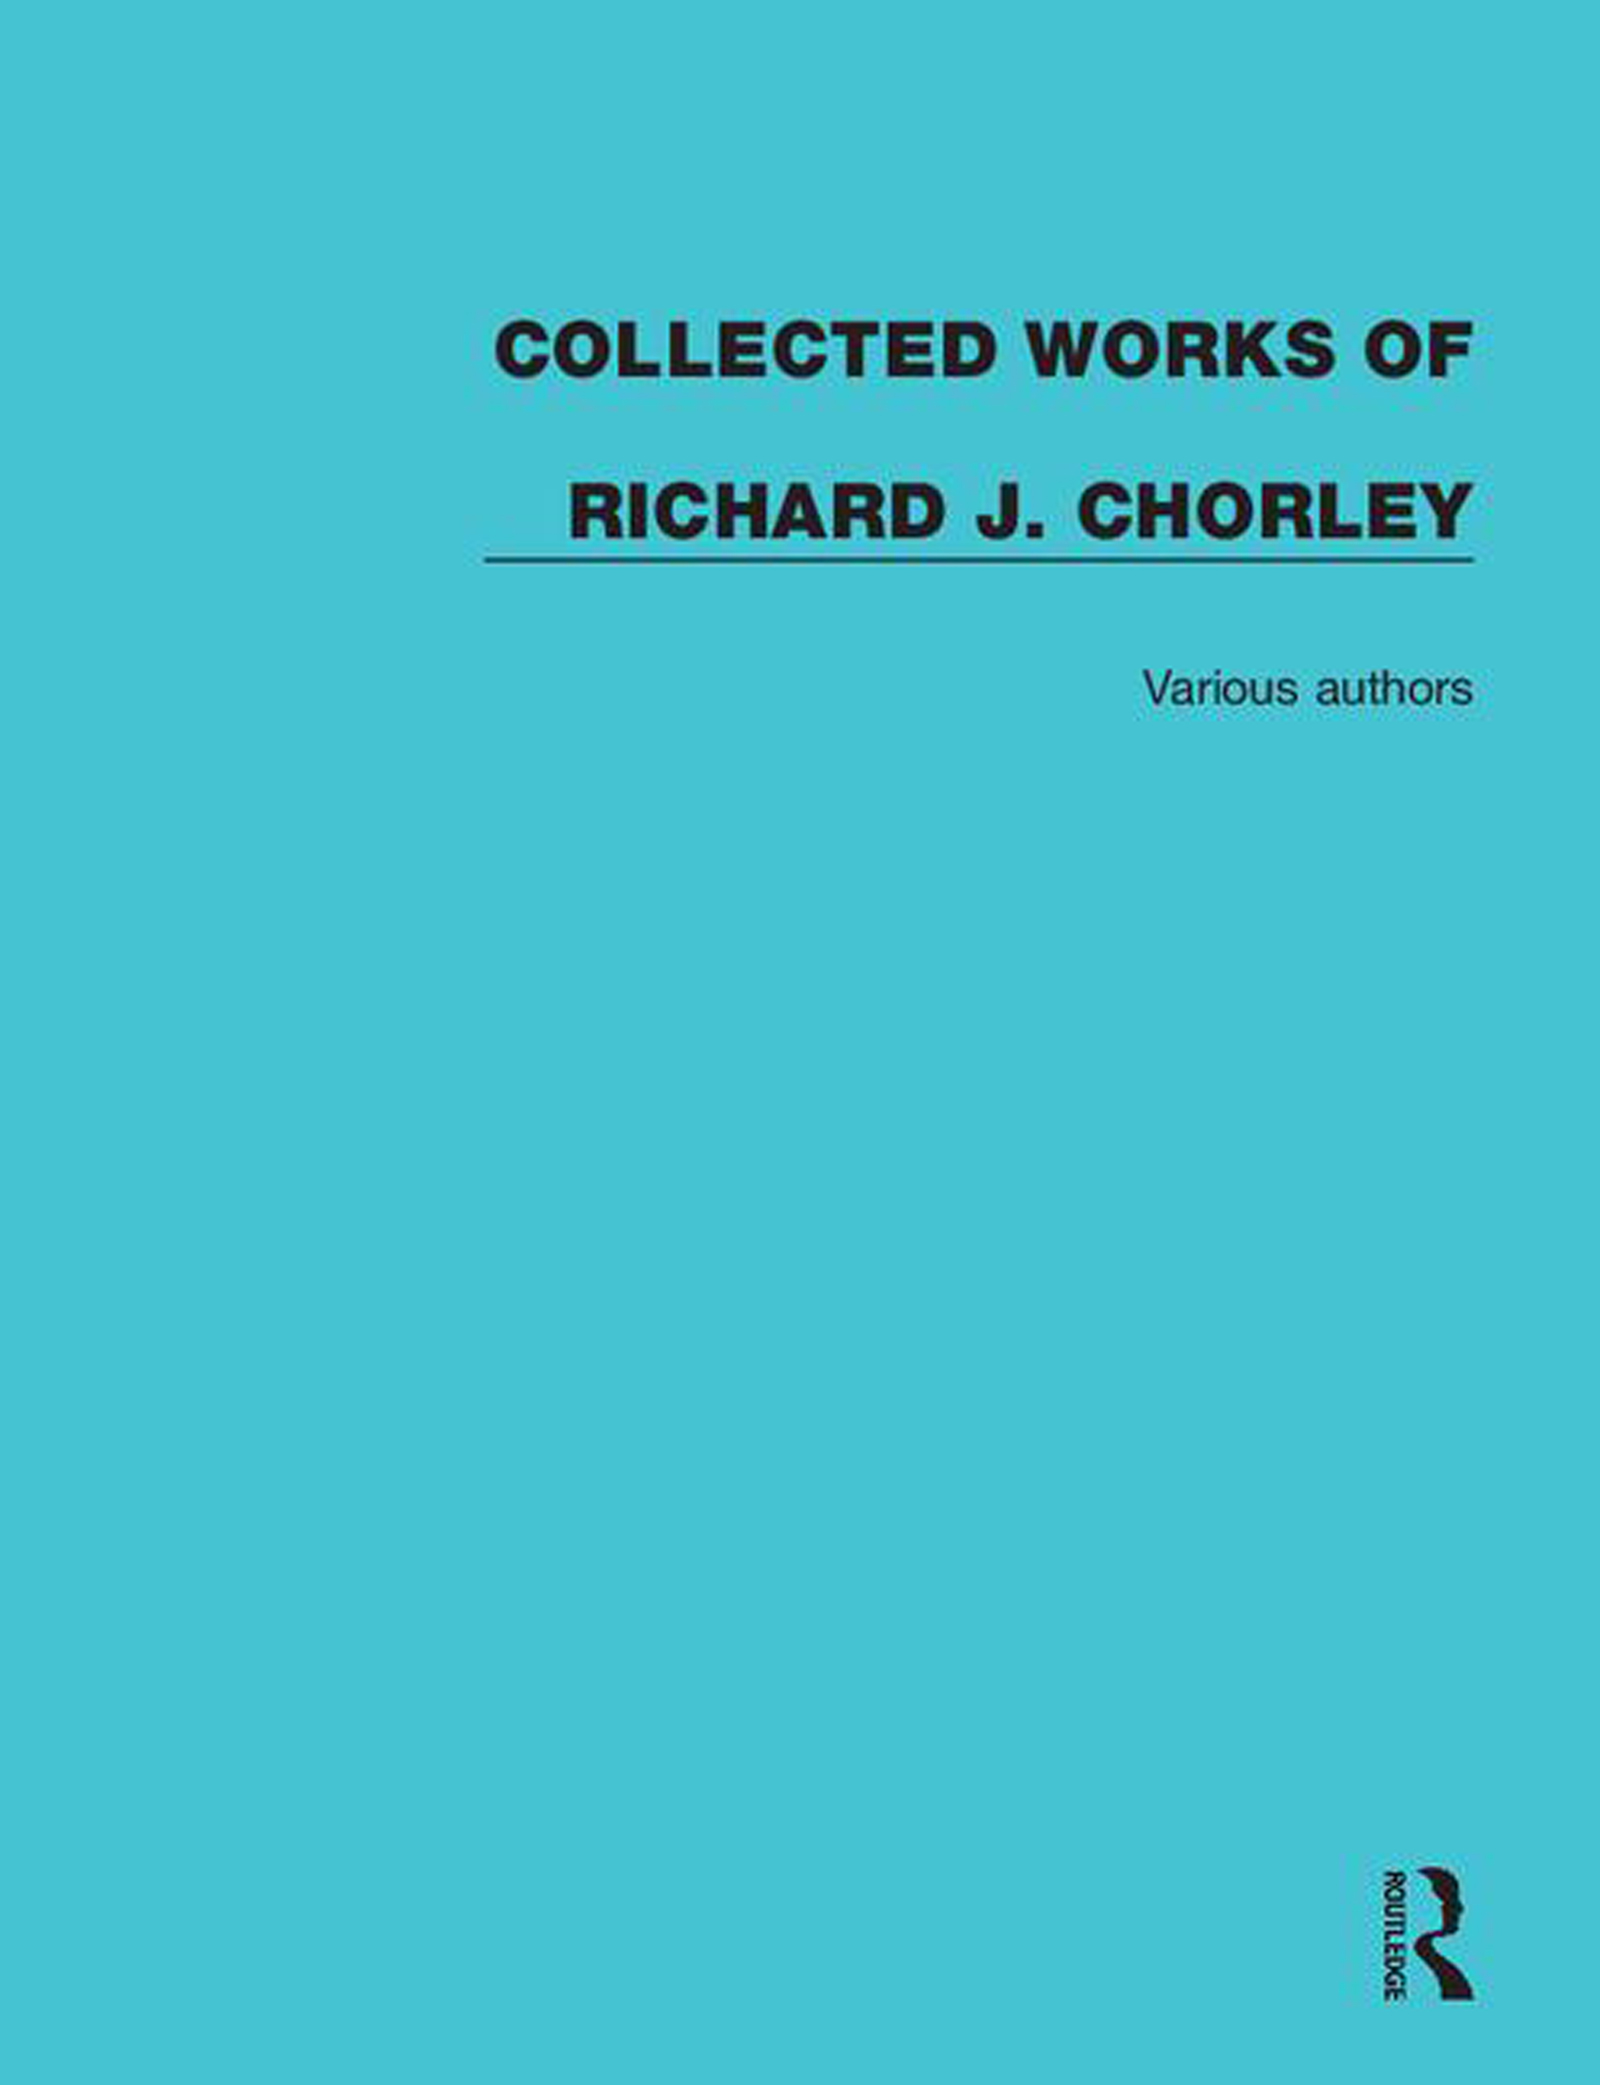 Collected Works of Richard J. Chorley